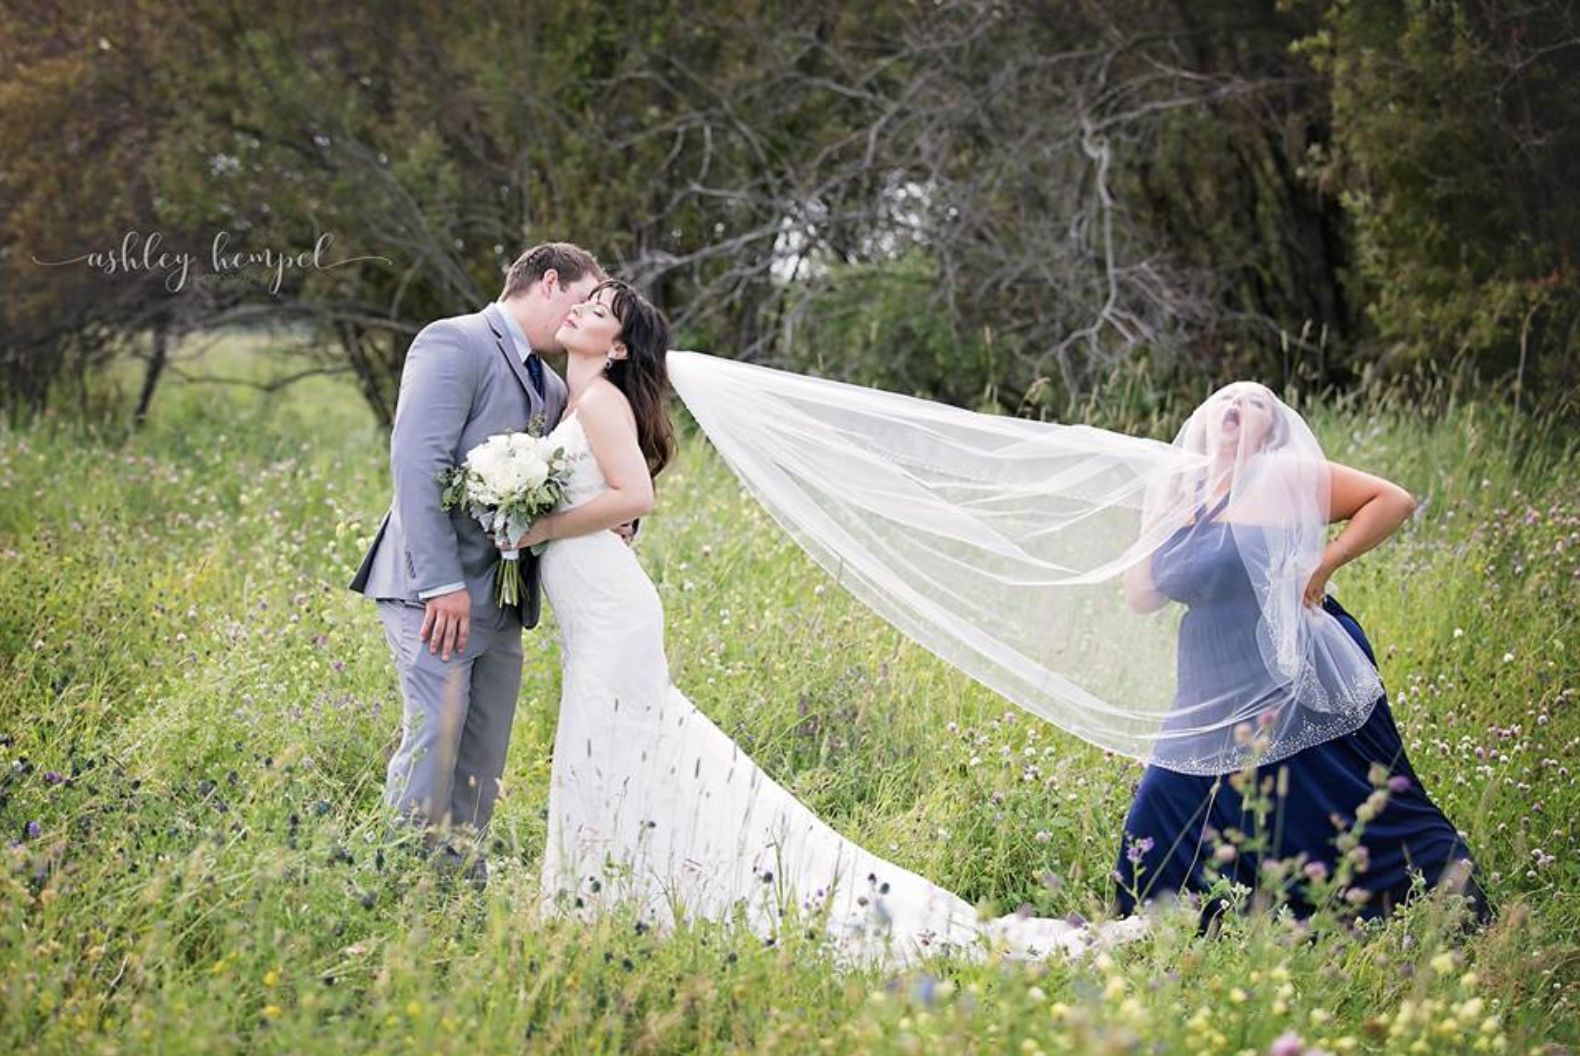 Bridesmaid Hilariously Upstages Newlyweds In Wedding